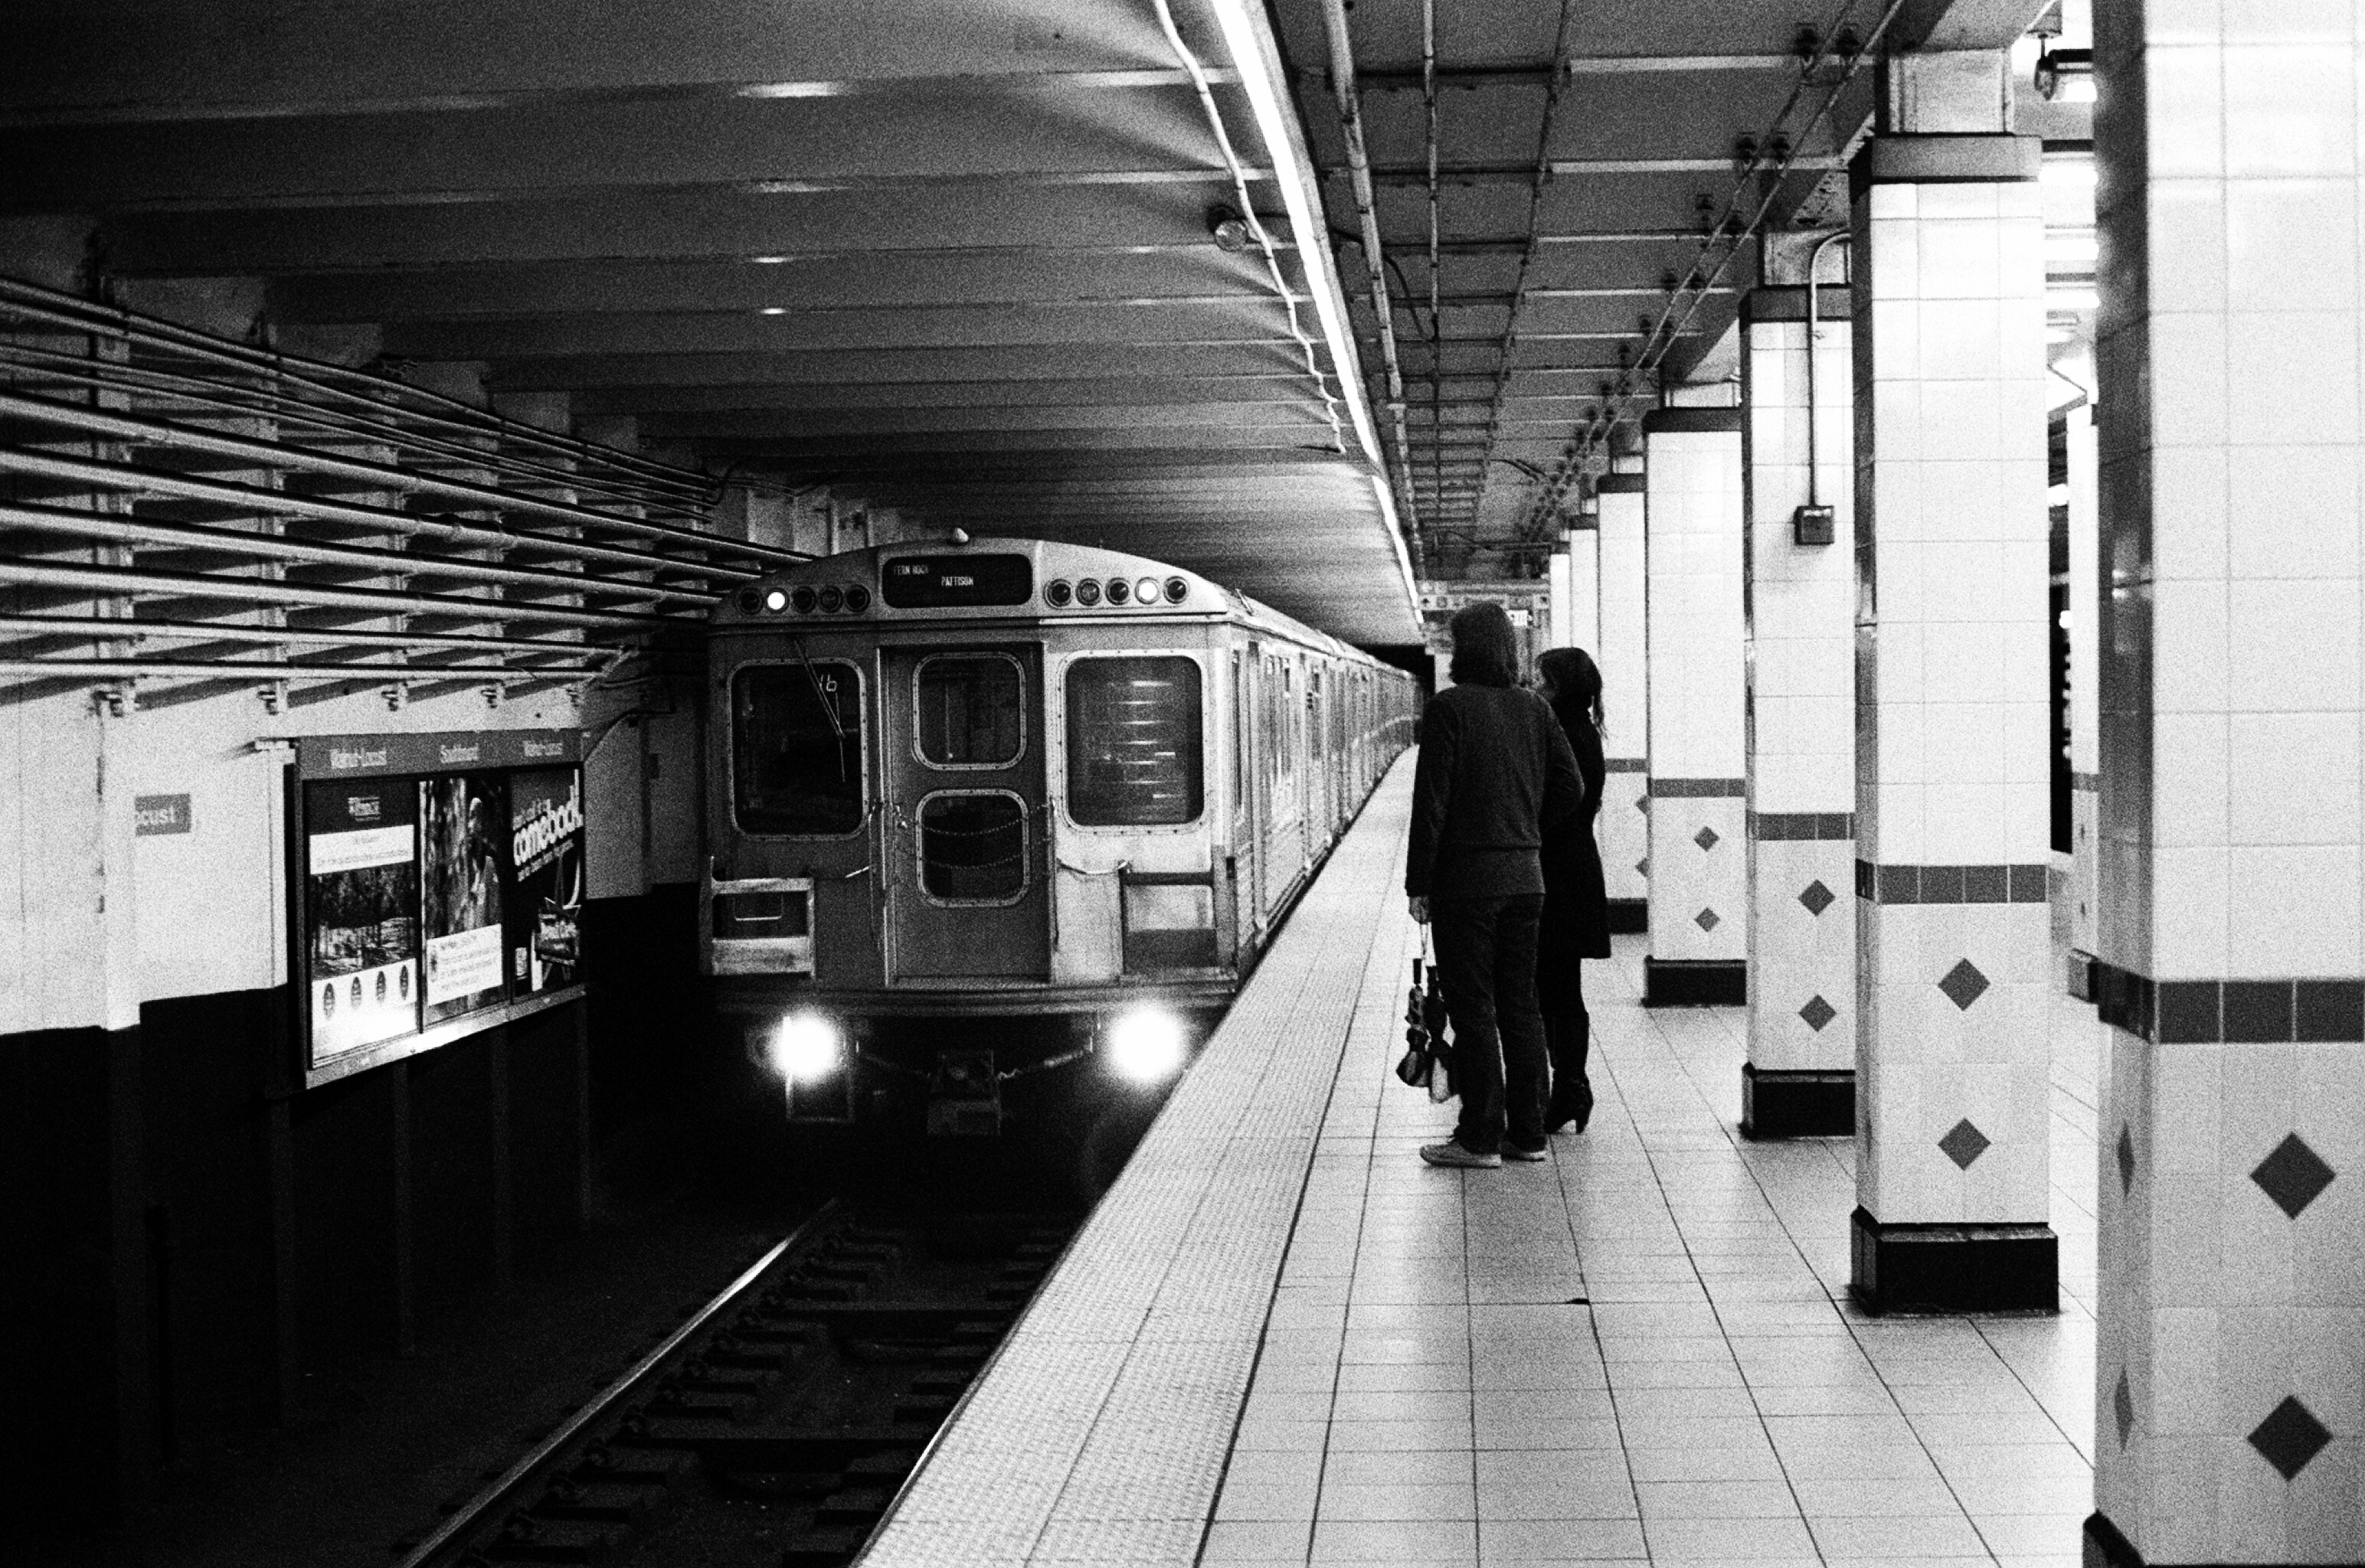 Broad Street Line, Photo by oilman930